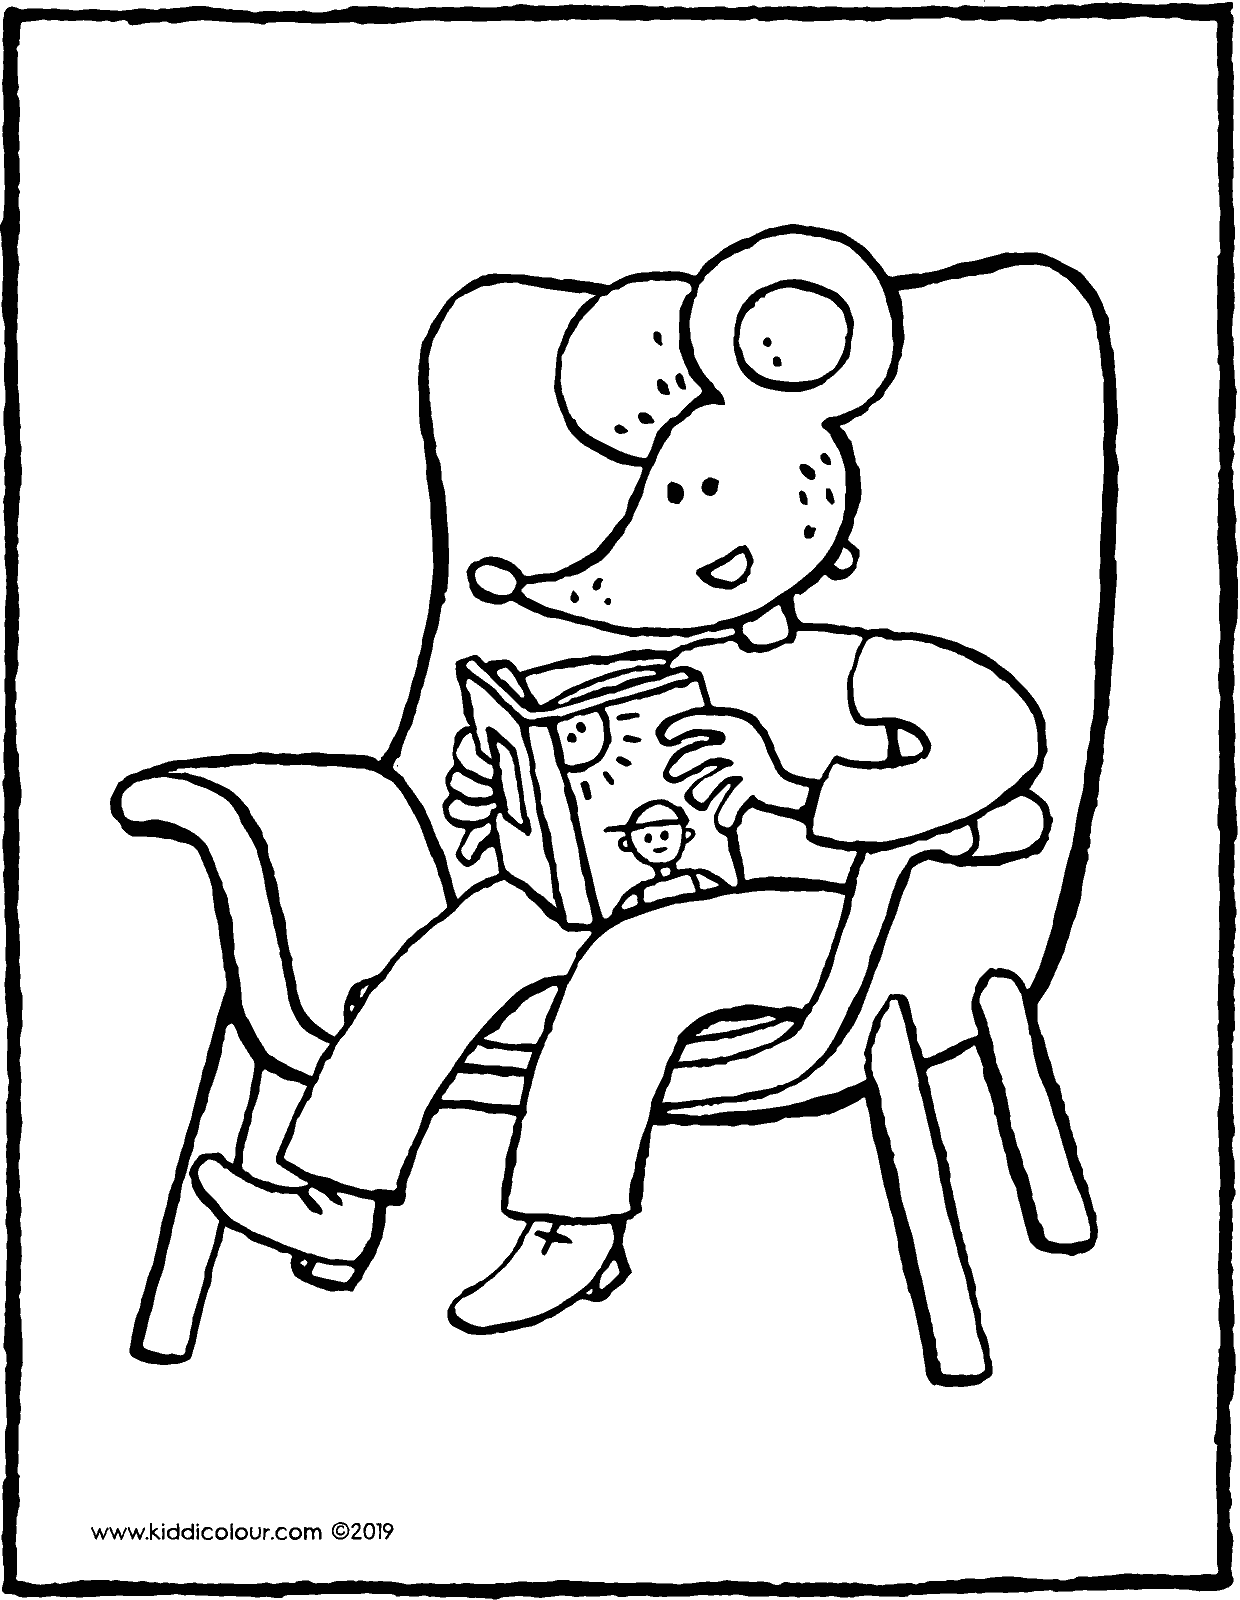 Thomas reads a book on the sofa colouring page drawing picture 01V